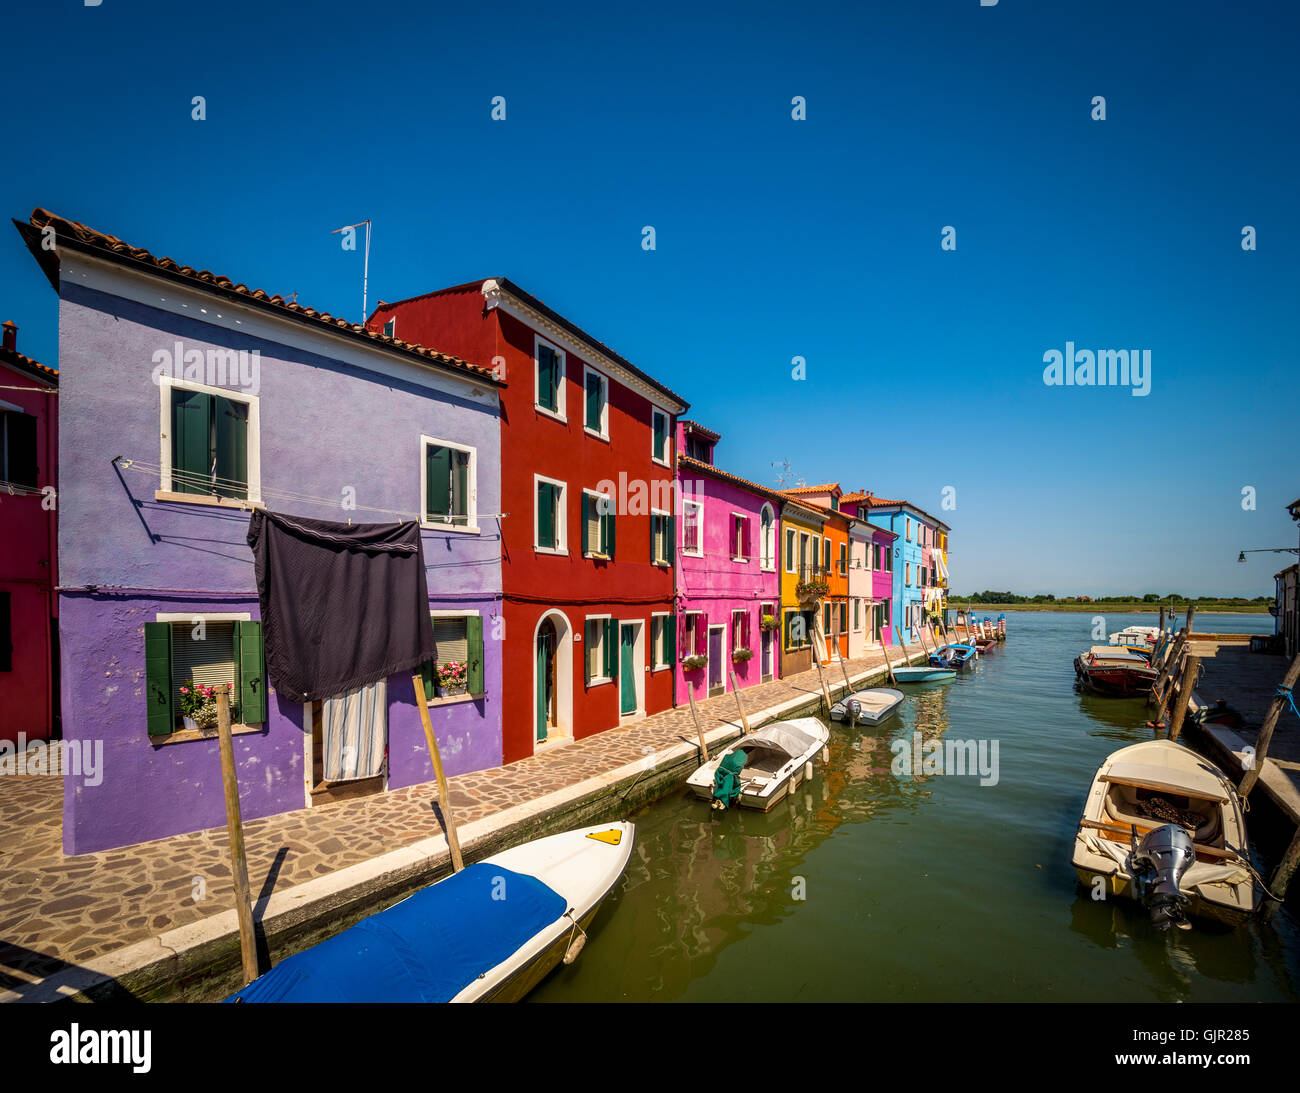 The traditional colourful painted buildings with laundry hanging outside on washing-lines, on the island of Burano. - Stock Image